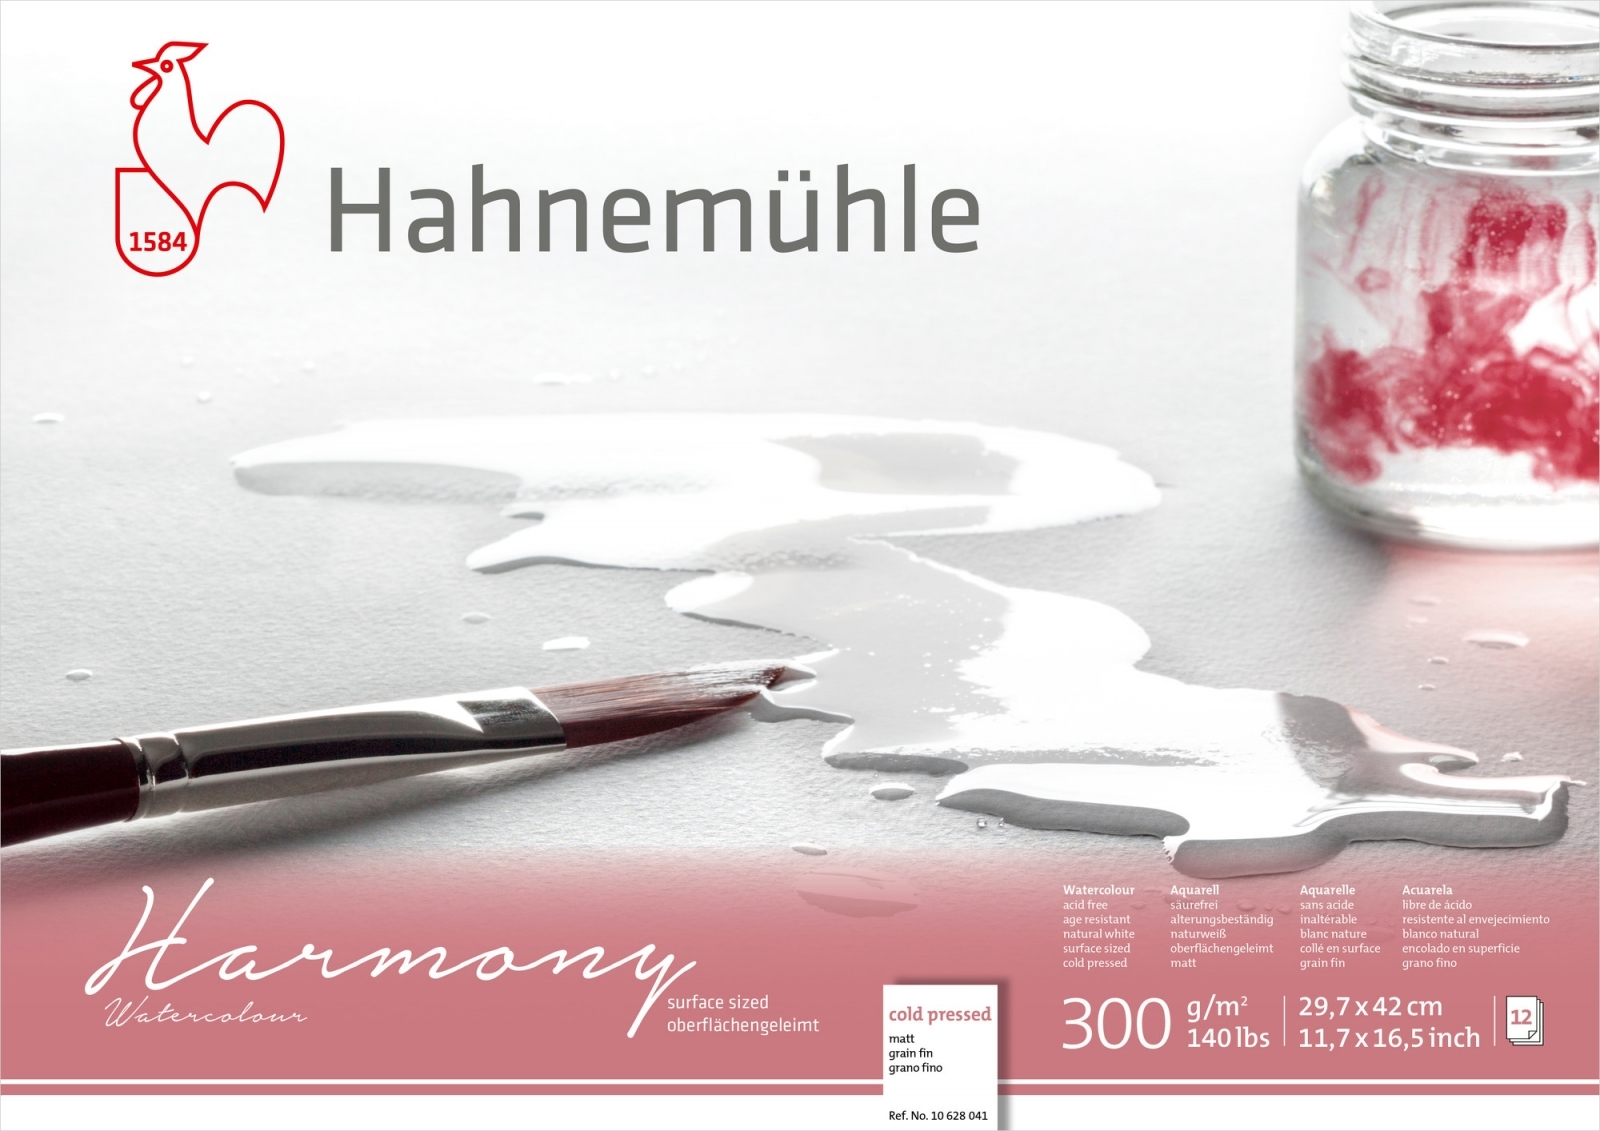 PAPEL HAHNEMUHLE HARMONY WATERCOLOUR, 300 G/M², COLD PRESSED 12fls 29,7x42cm- A3 (10628041) - Papelaria Botafogo